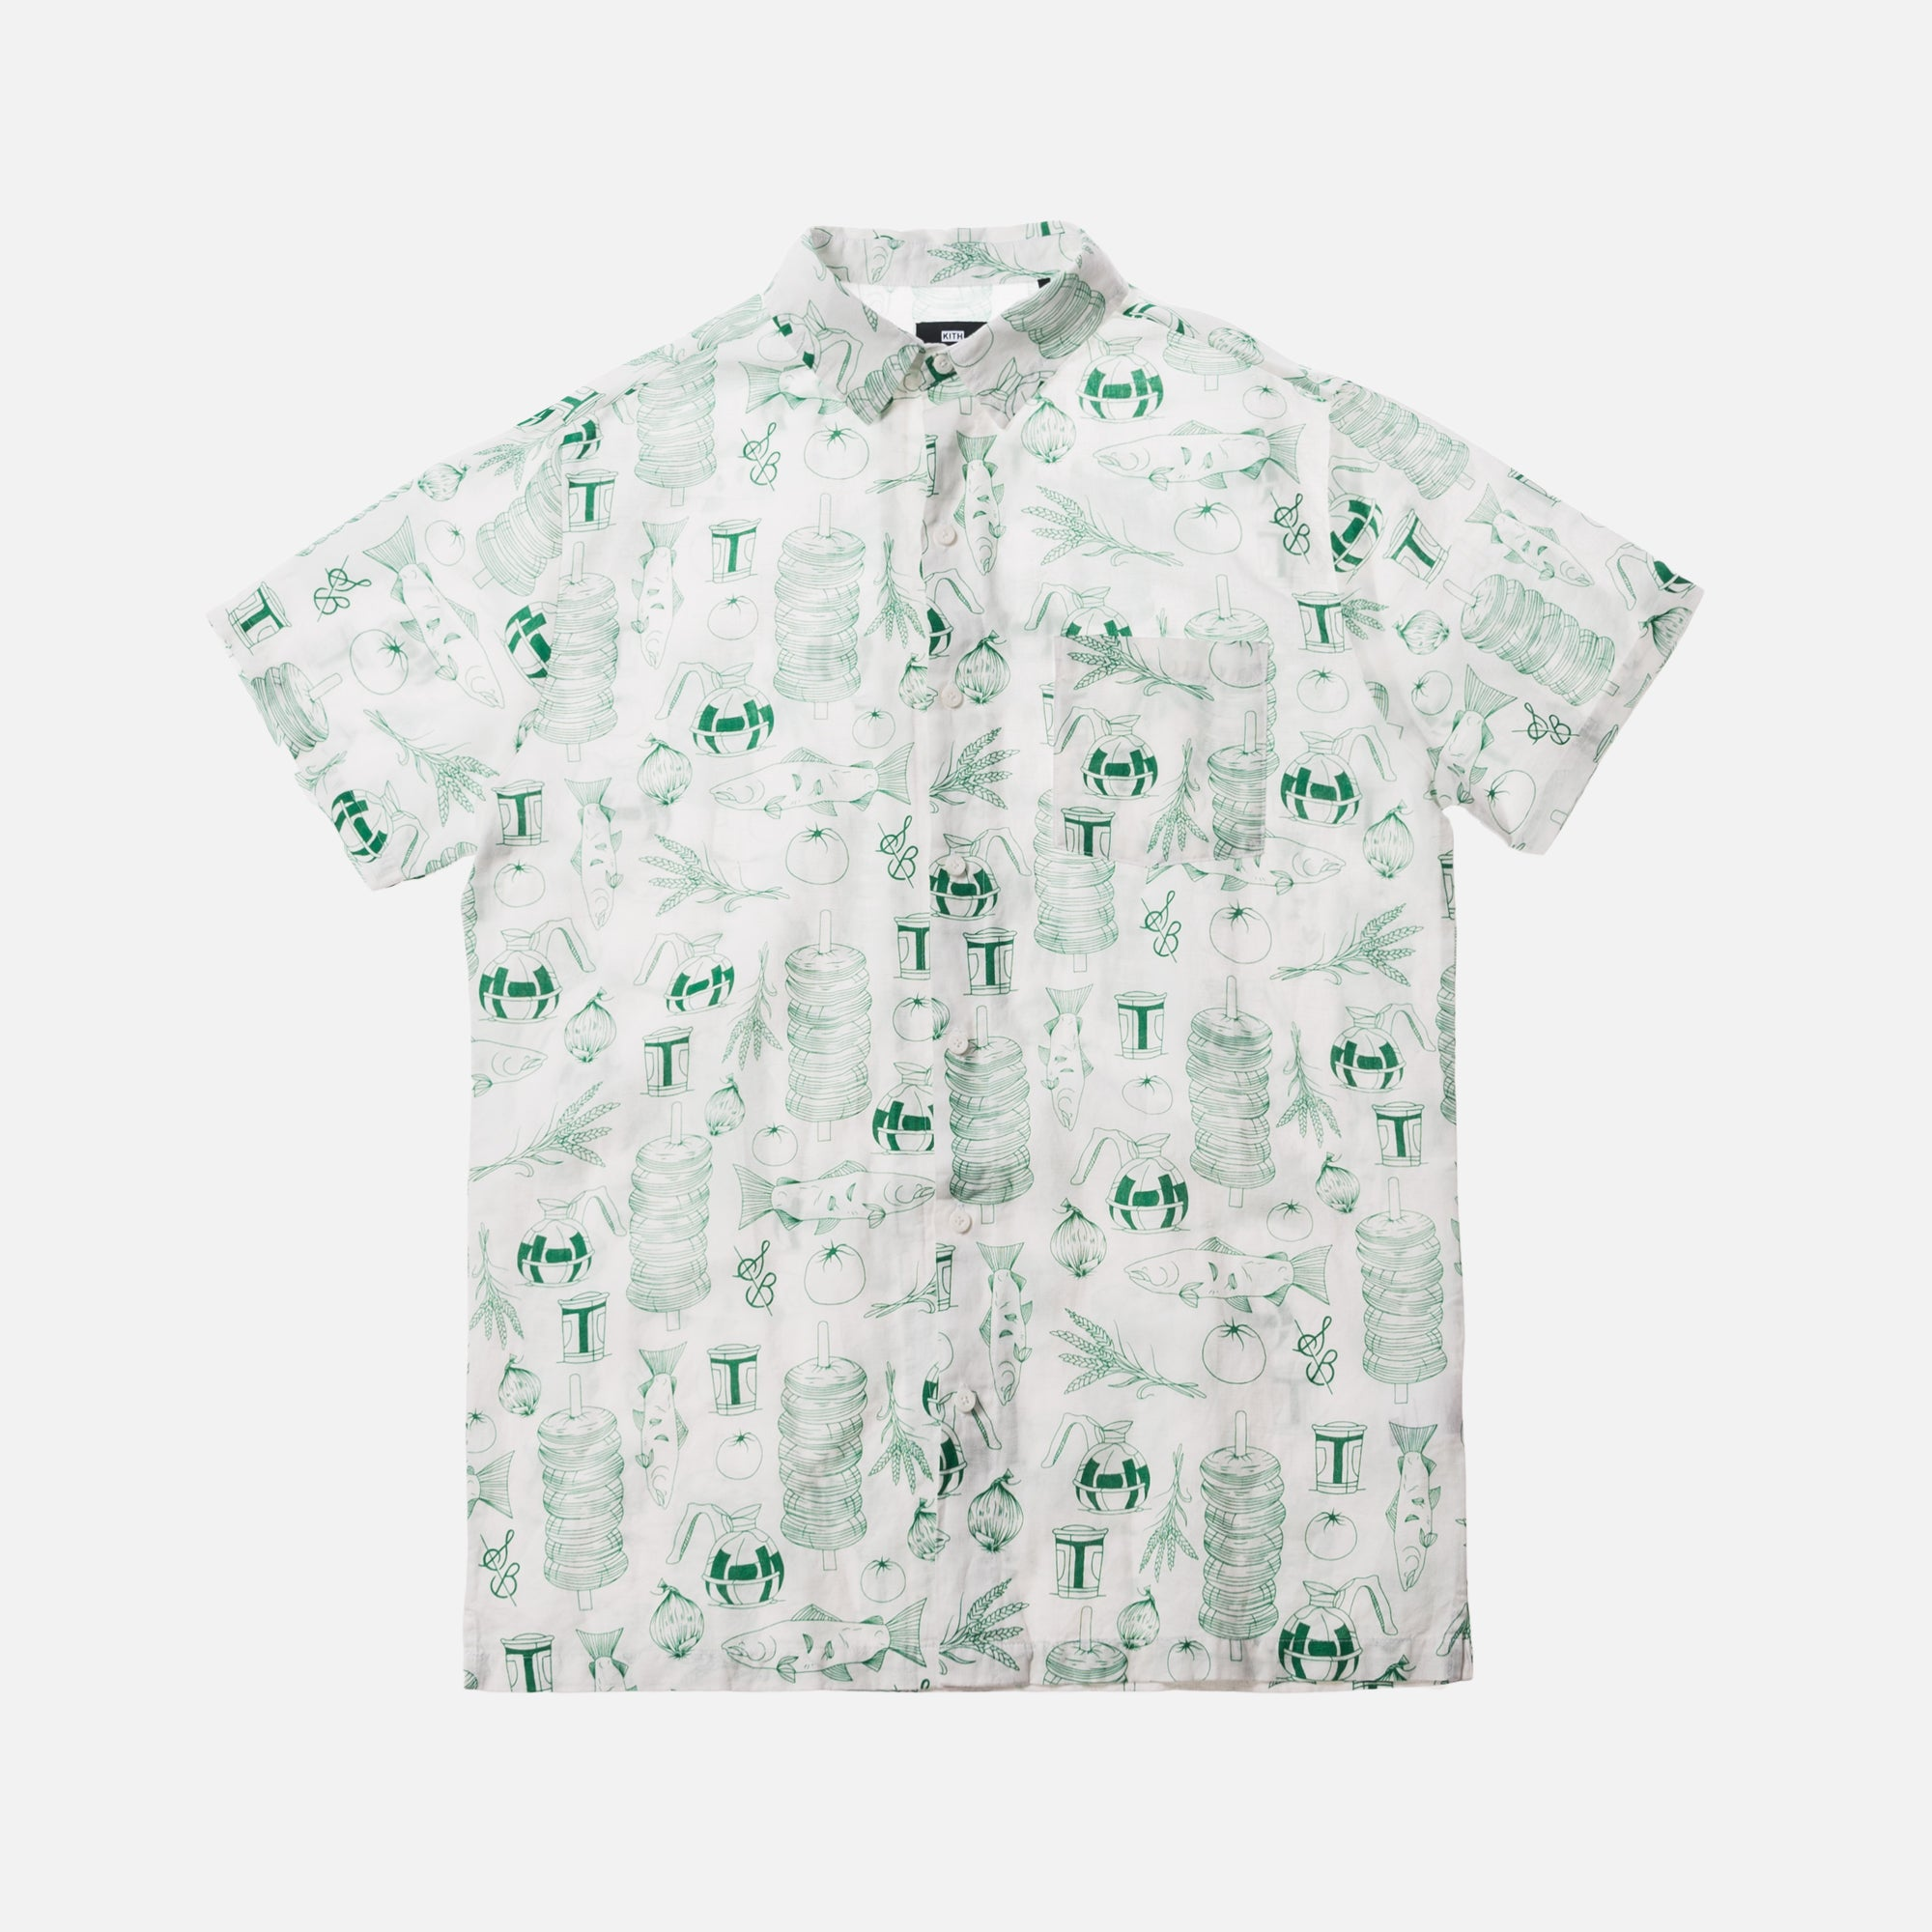 Kith x Sadelle's All Over Hawaiian Button-Up - Multi